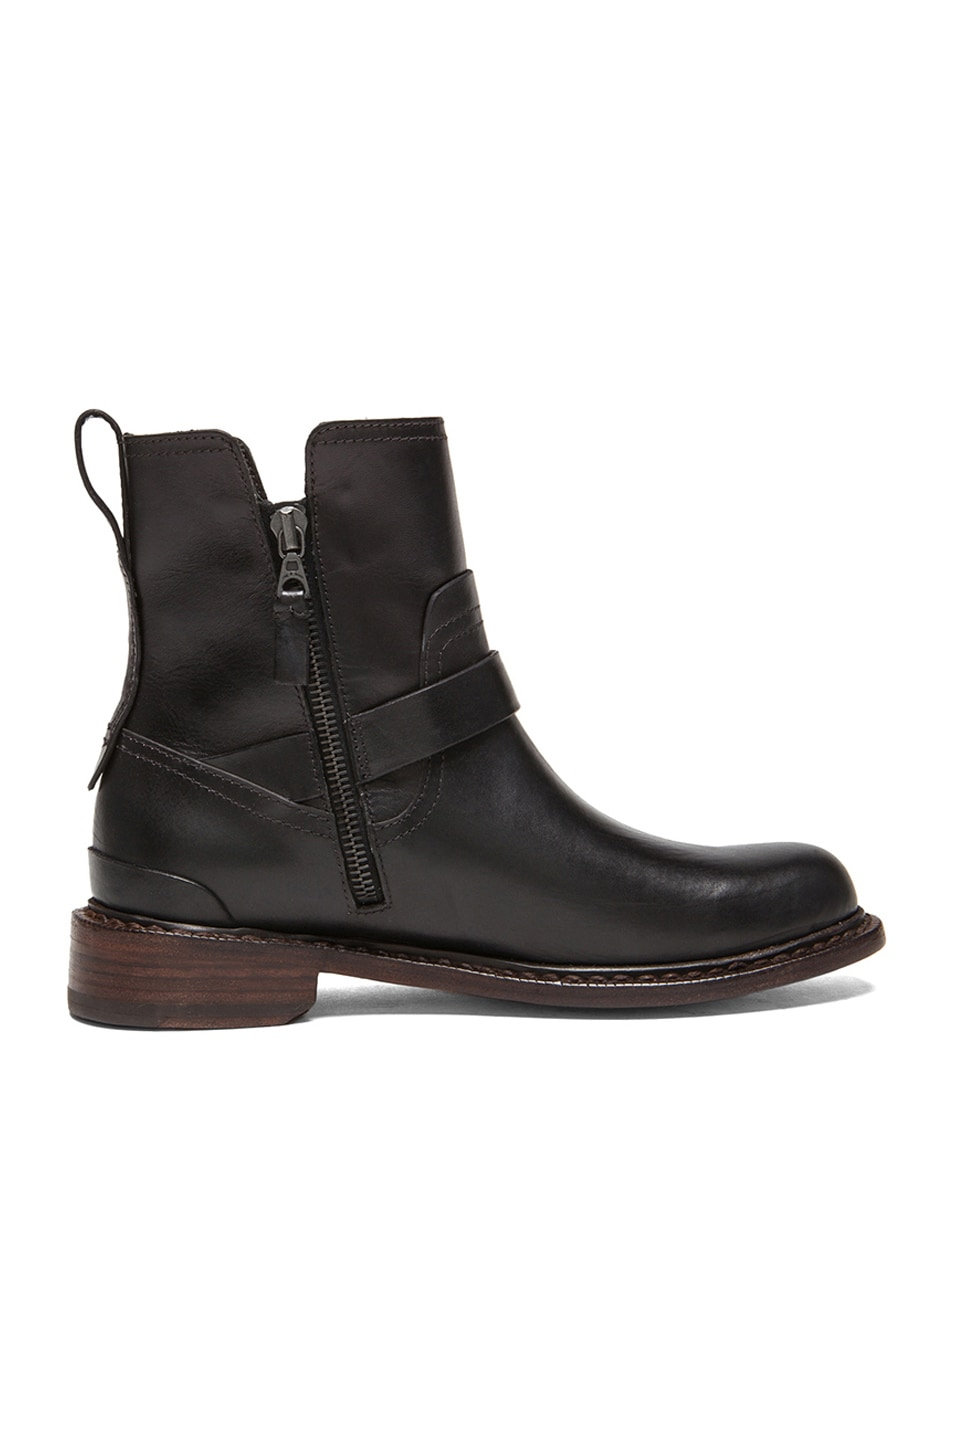 Image 5 of Rag & Bone Ashford New Moto Leather Boots in Black